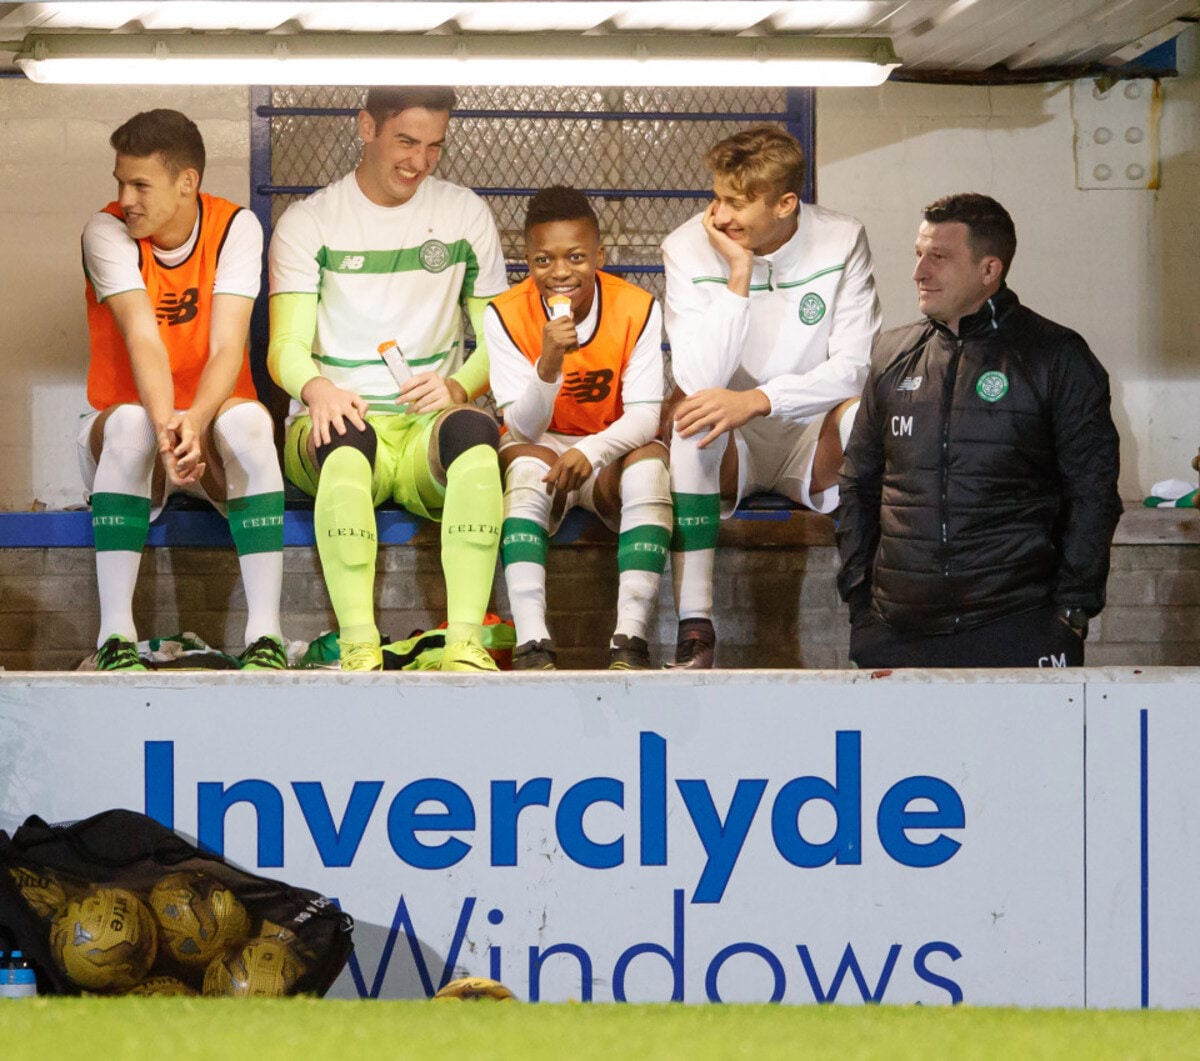 03.10.2016 Celtic v Hearts, SPFL Development League ............. KARAMOKO KADER DEMBELE ON BENCH